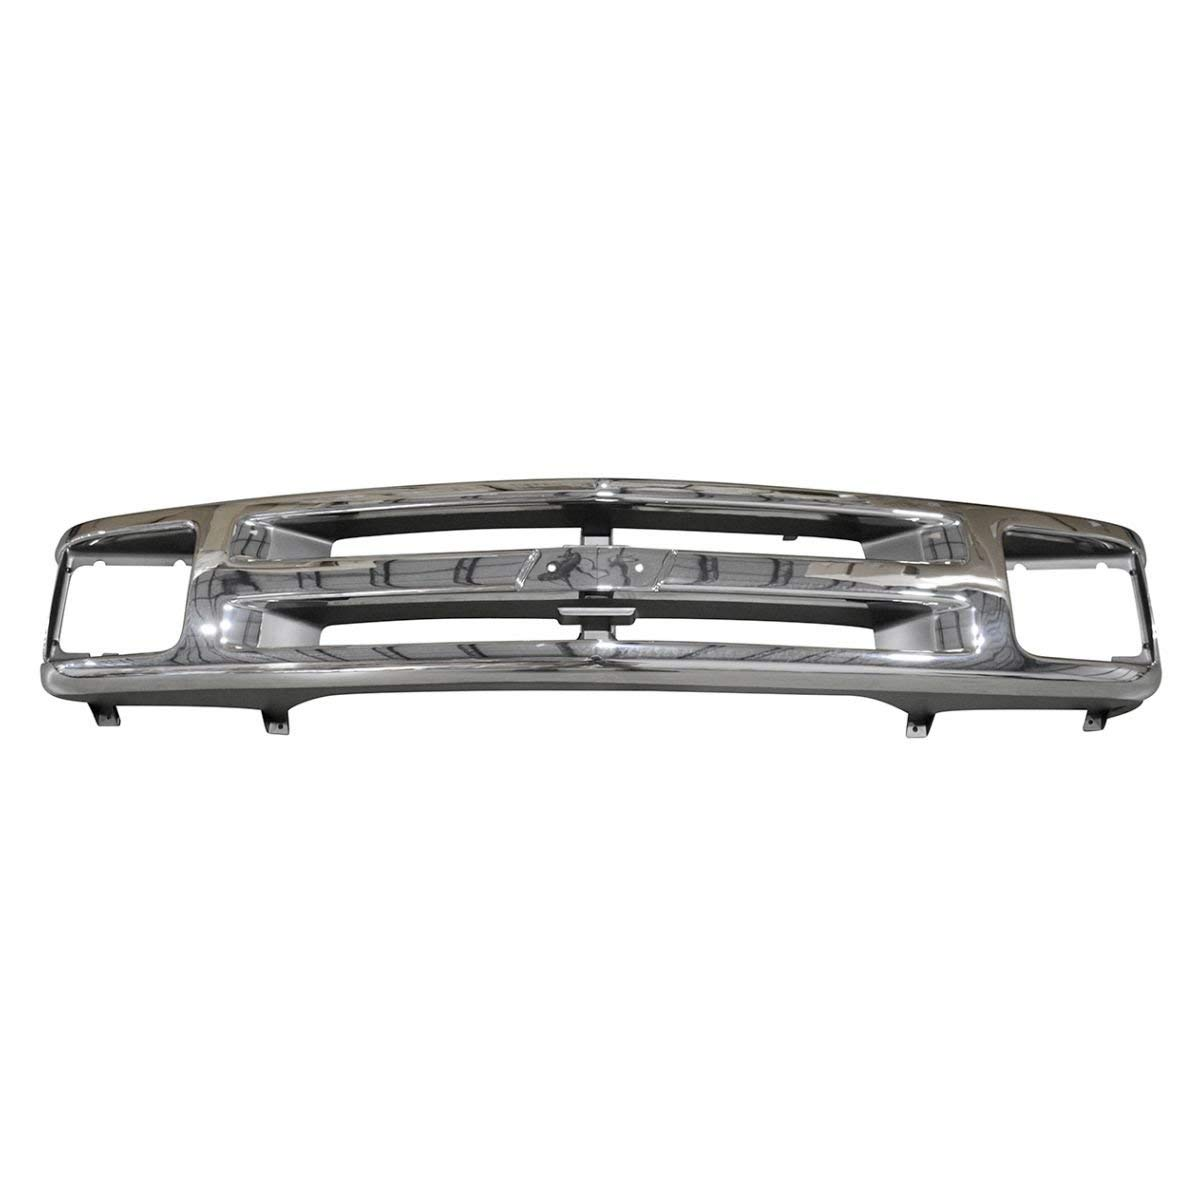 Cheap Chevy S10 Grill, find Chevy S10 Grill deals on line at